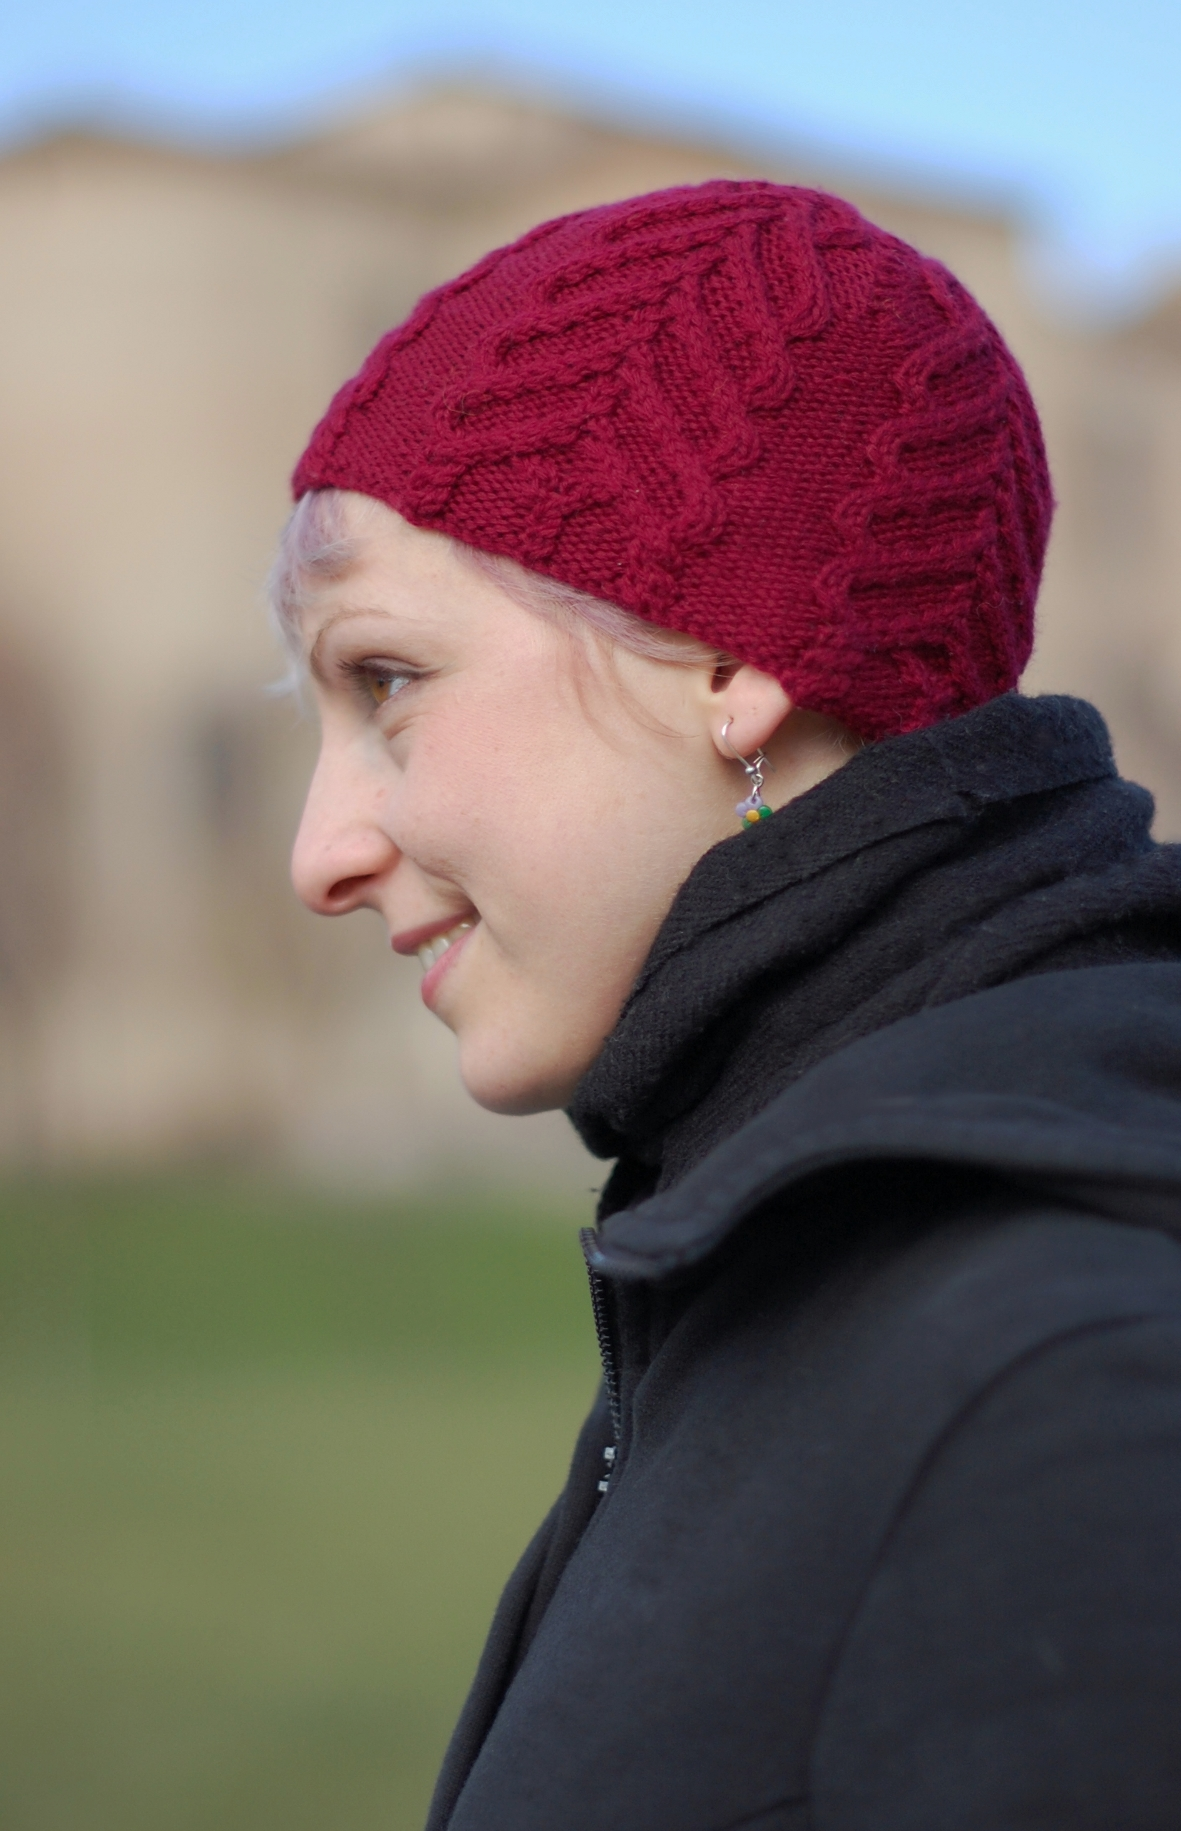 Freccia cabled cap knitting pattern